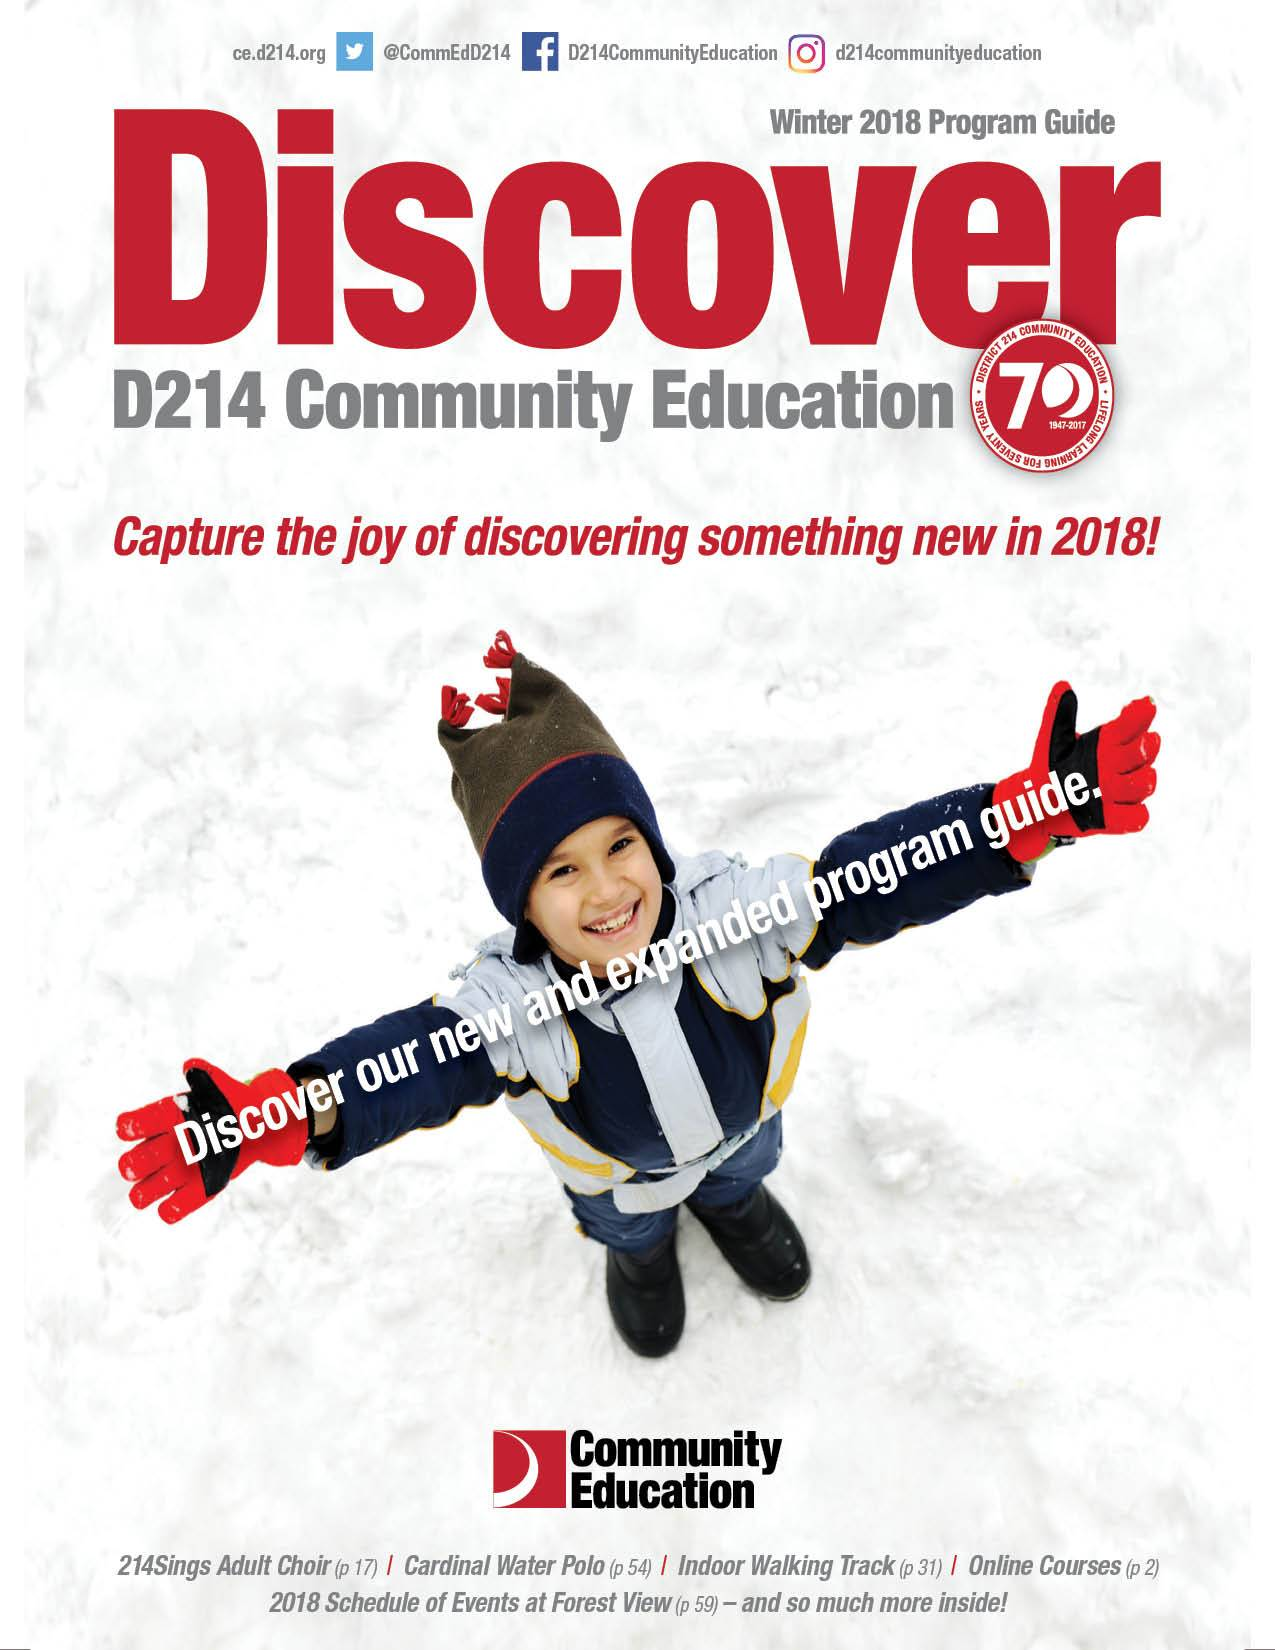 Watch out for the Winter 2018 Program Guide arriving in homes this month. District 214 Community Education is offering 300 classes this semester. To register, visit ce.d214.org or call (847) 718-7700.